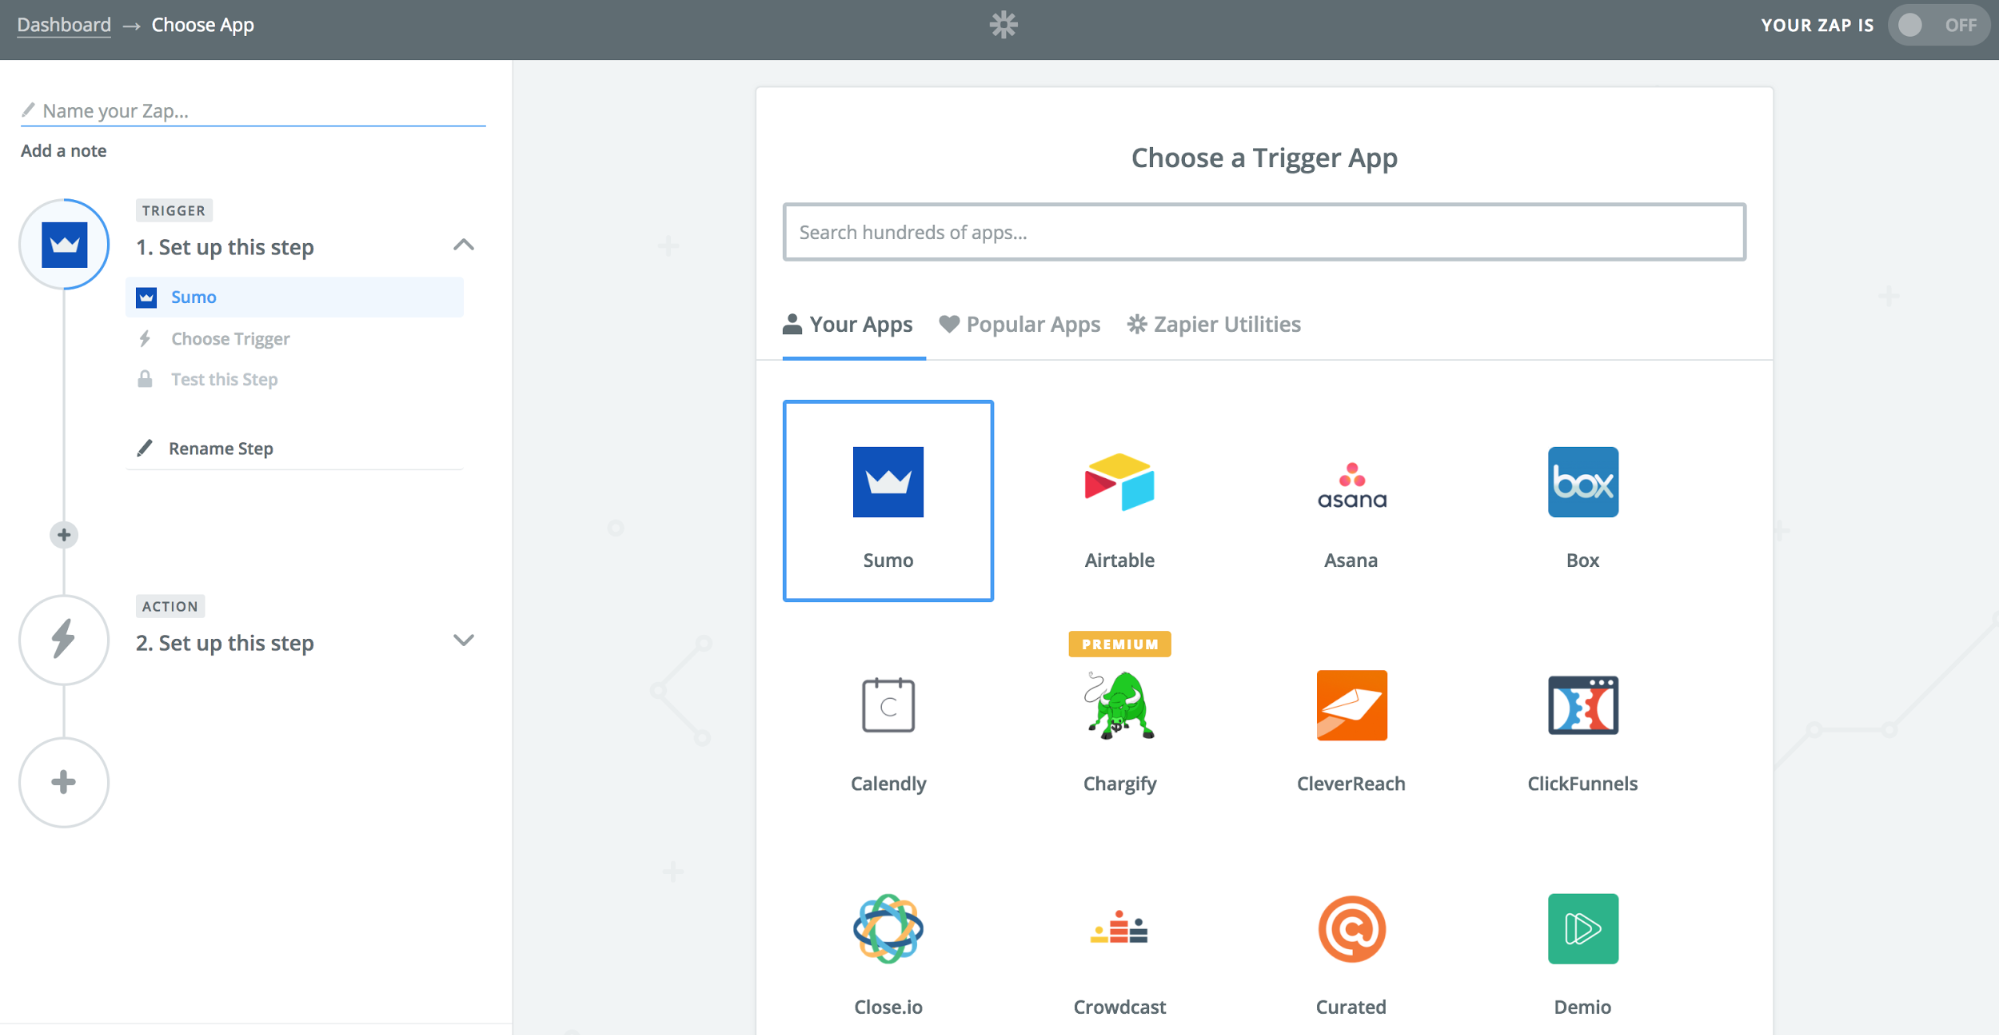 Screenshot showing trigger app selection page on Zapier